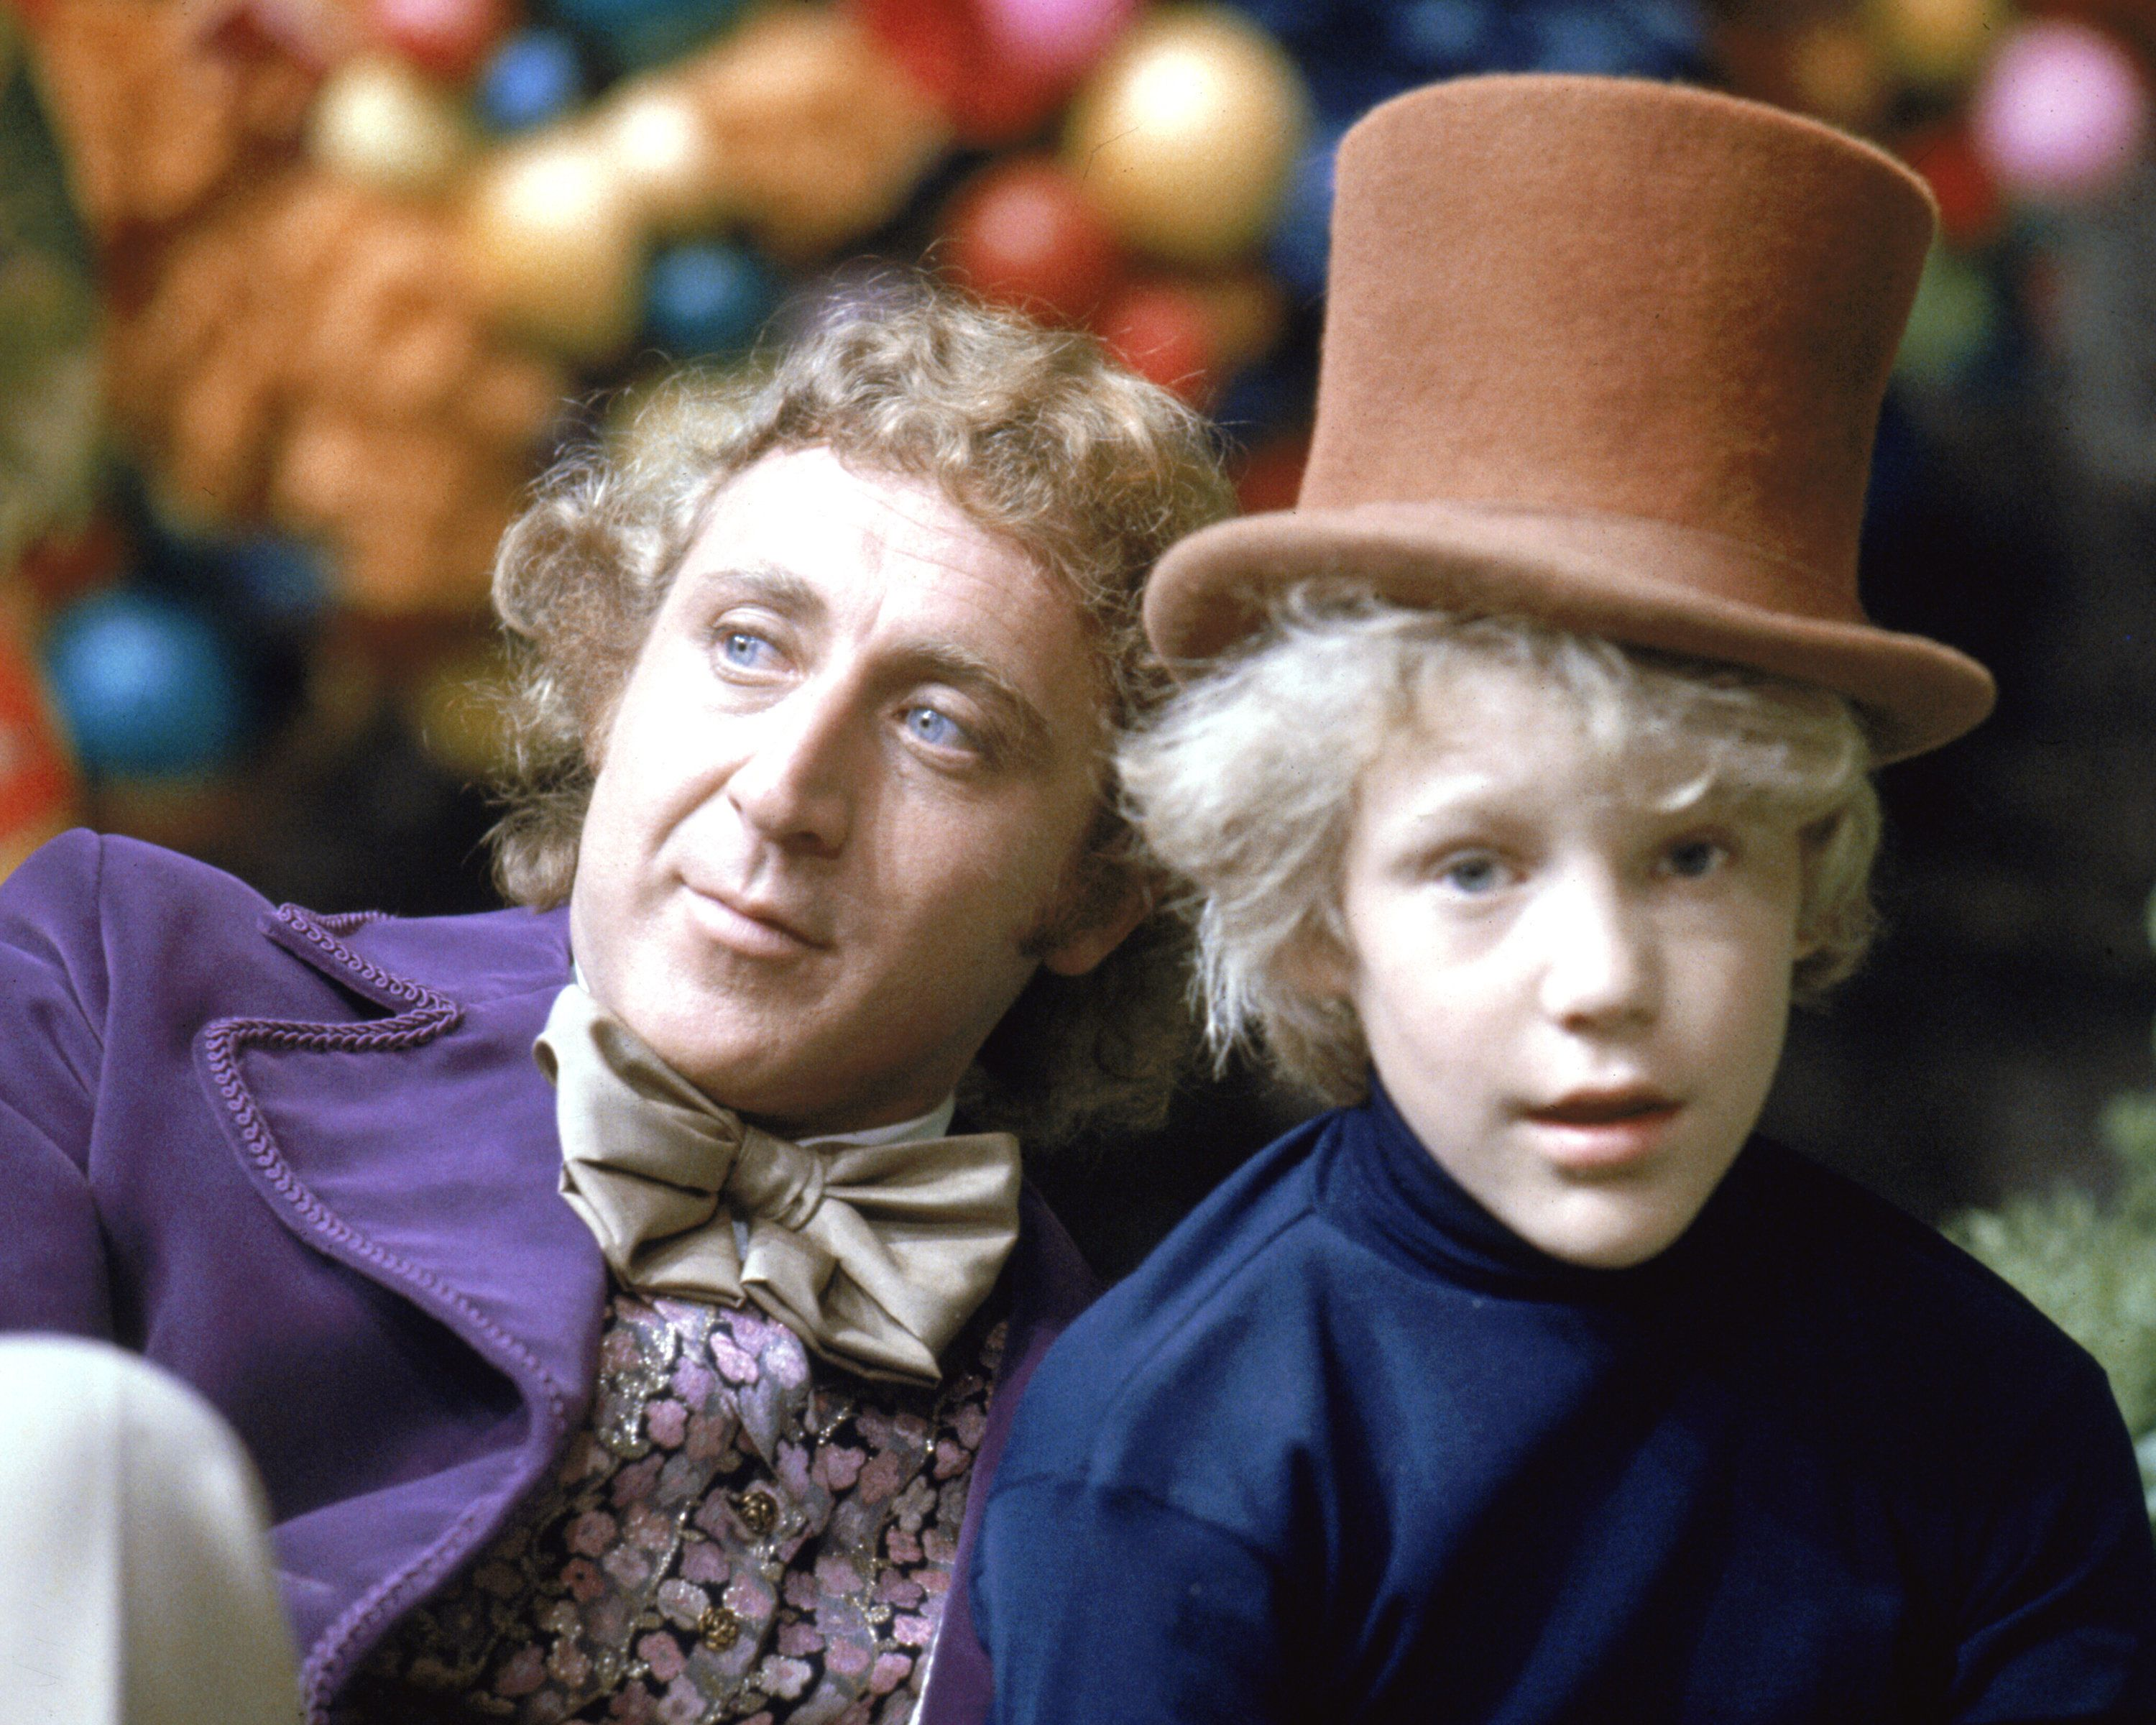 Gene Wilder as Willy Wonka and Peter Ostrum as Charlie Bucket, circa